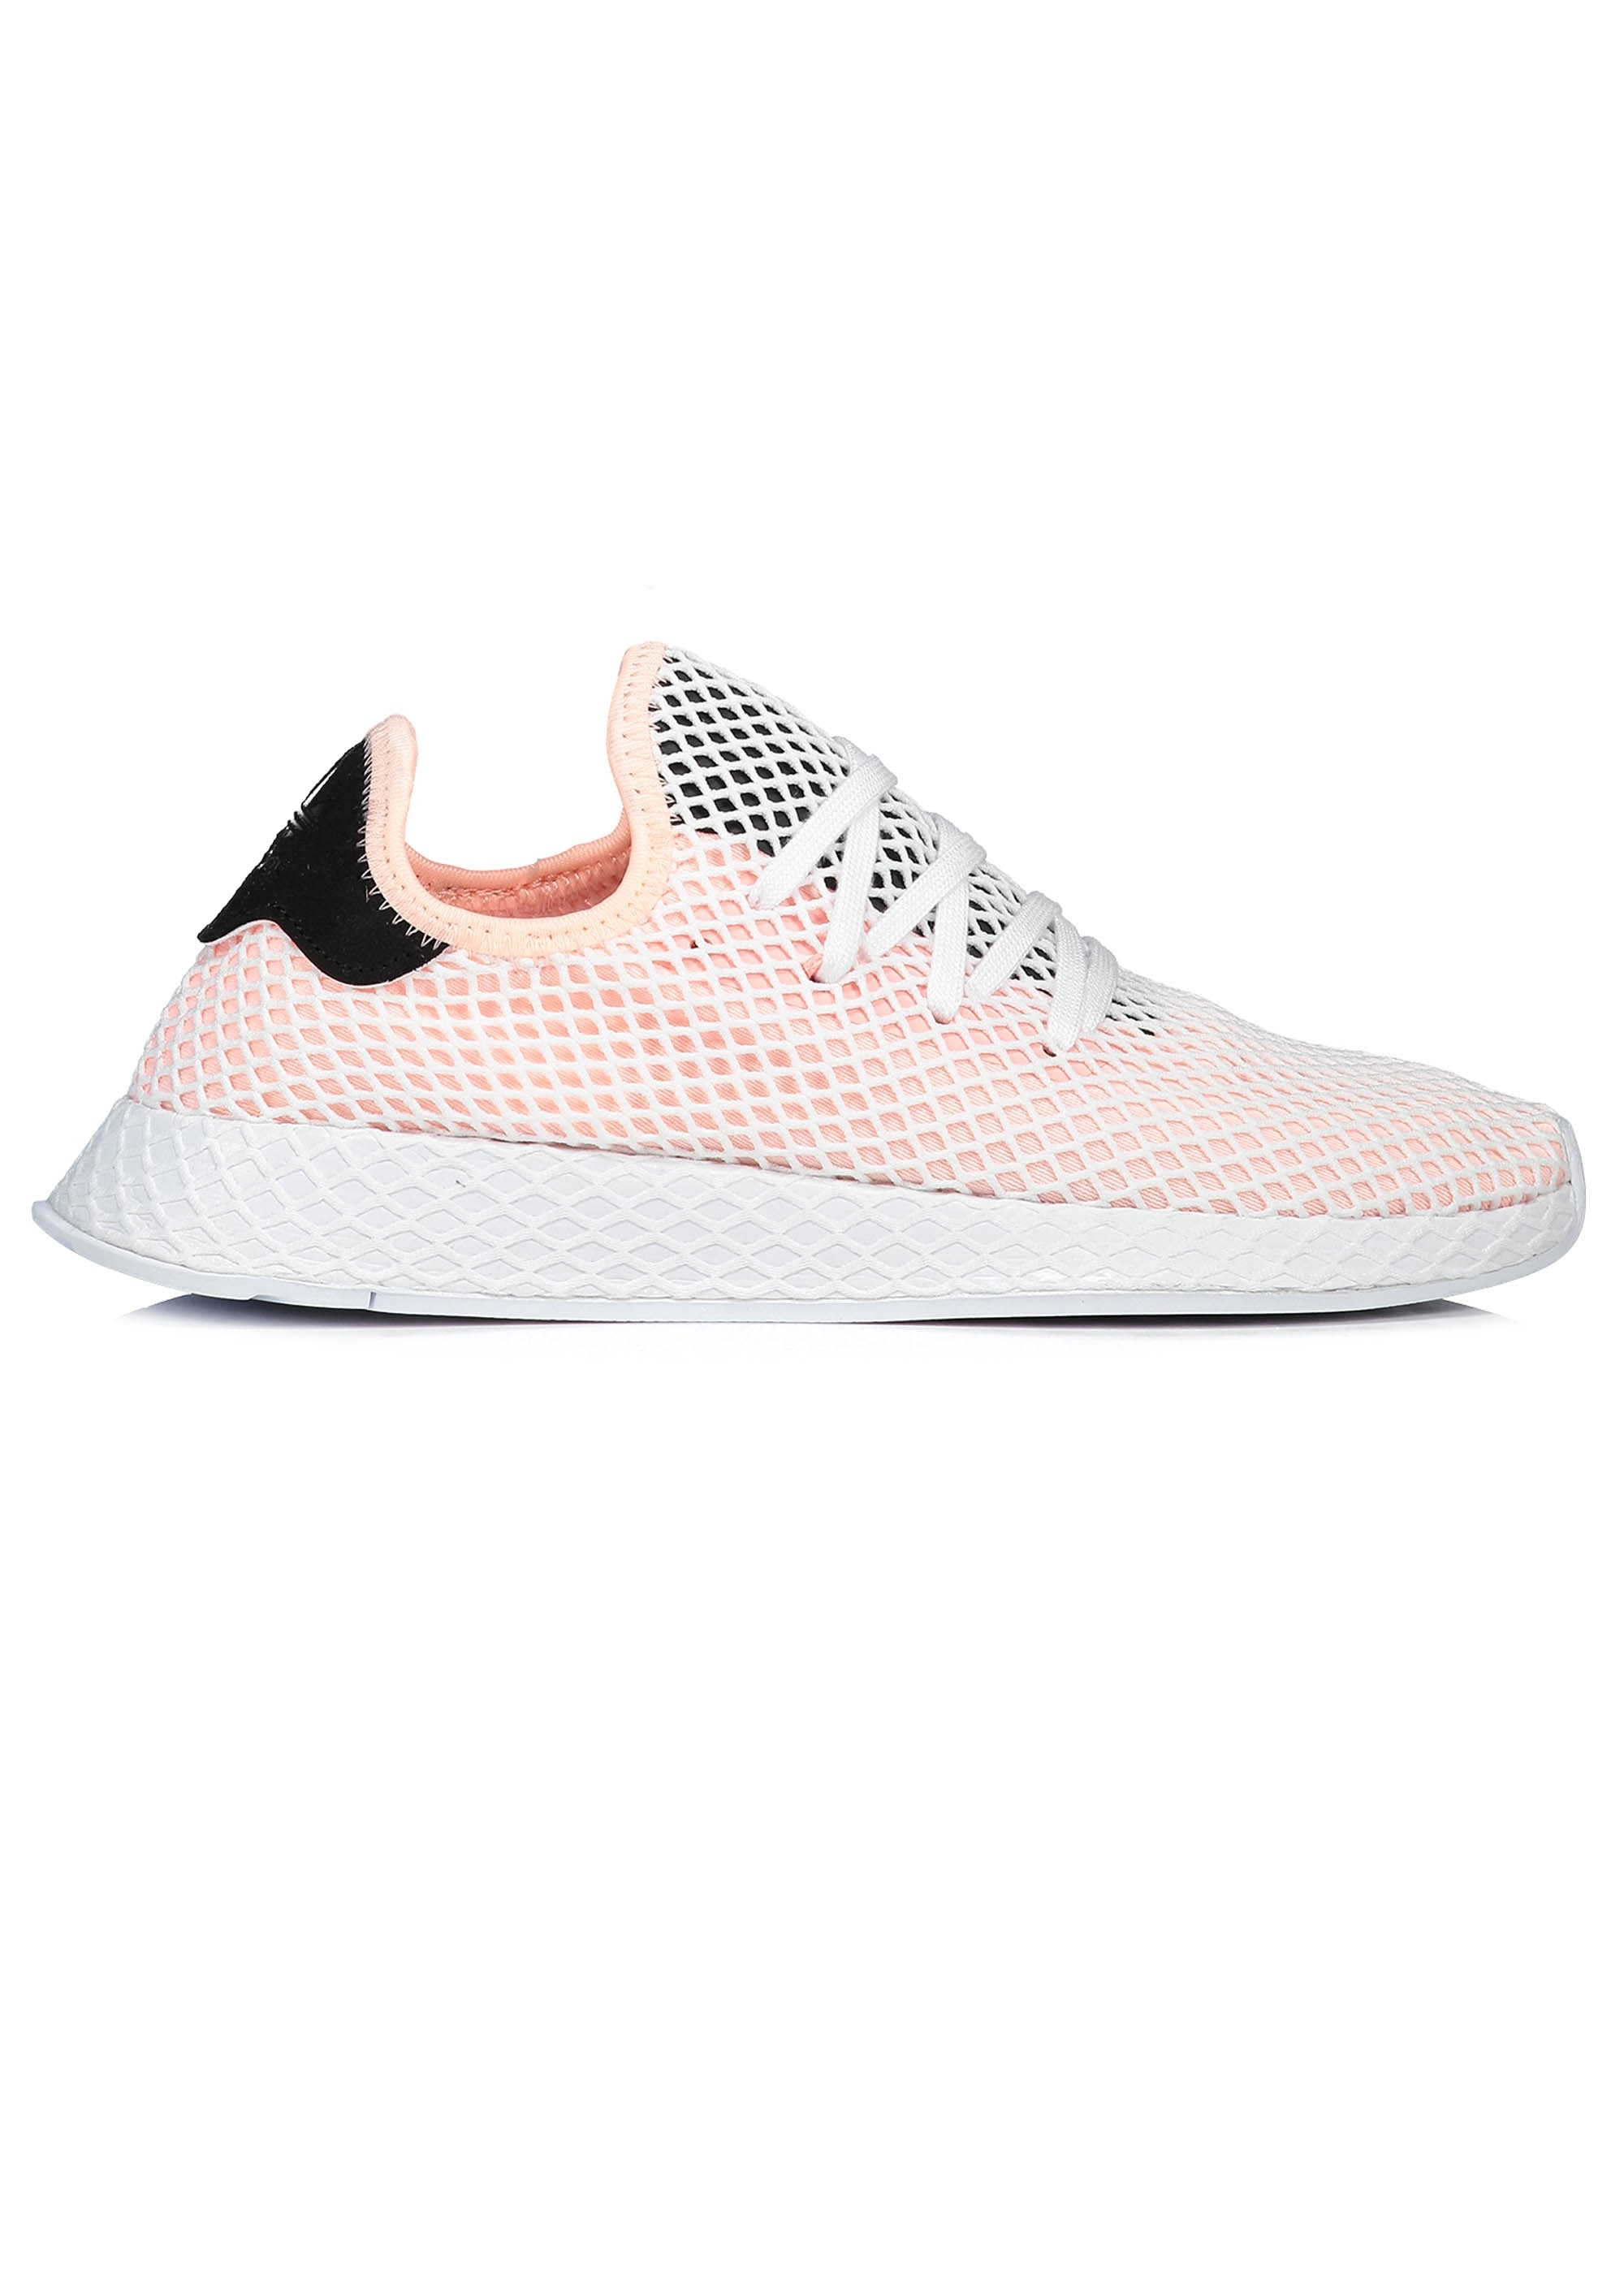 b13841e79 adidas Originals Footwear Deerupt Runner - Pink   White - Triads ...